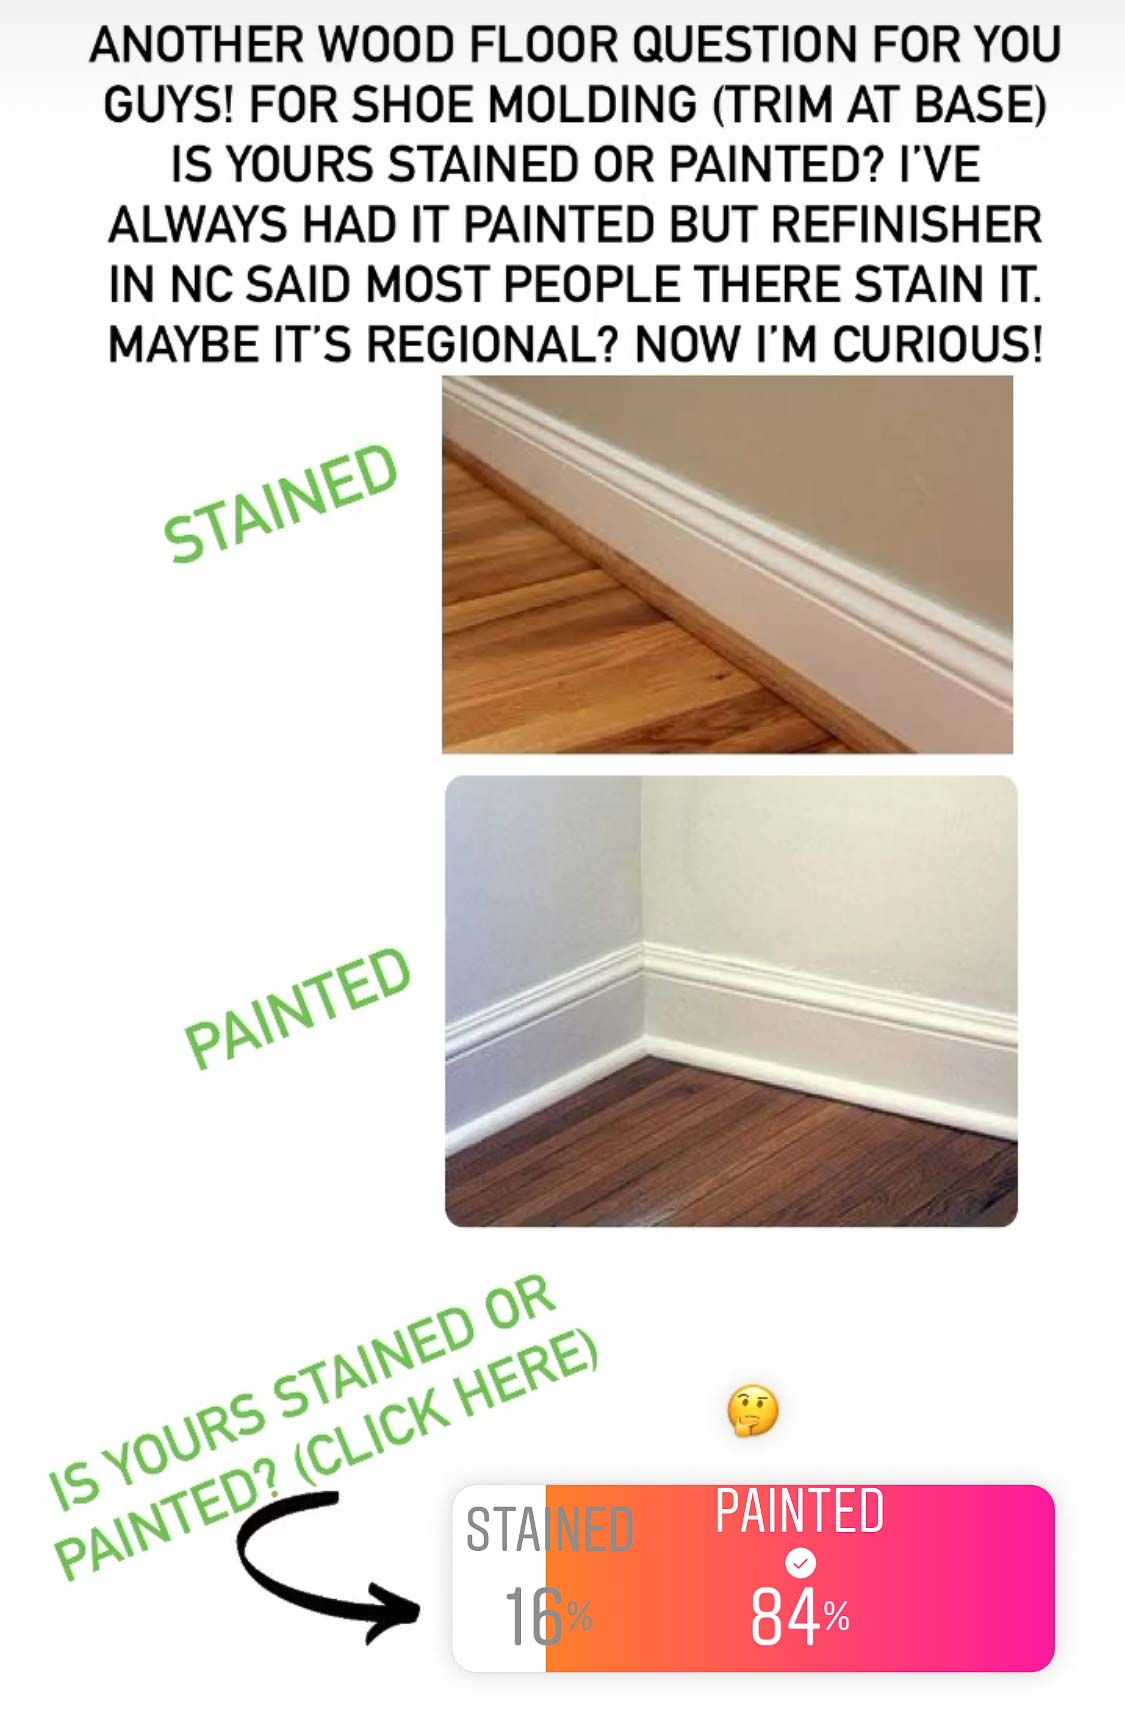 Stained vs. painted shoe molding - 84% prefer painted!